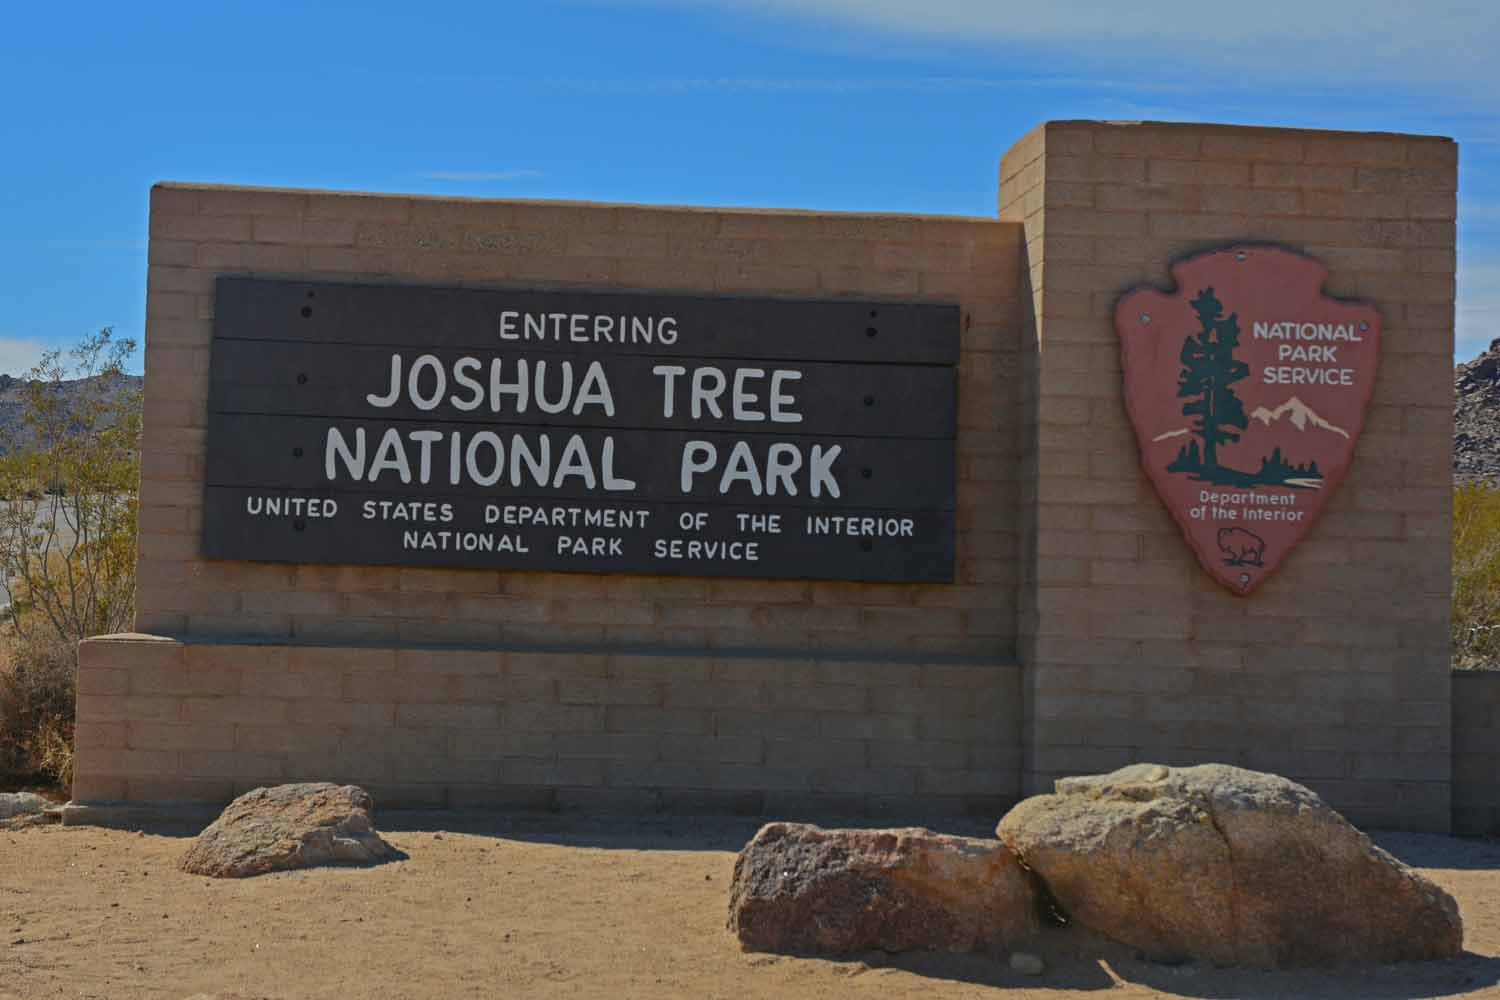 Jan and I toured Joshua Tree many years ago on trip from Disney World.  This was our first encounter with the High Desert.  It called us back on this trip where we had more time to take in the sights and explore the trails.